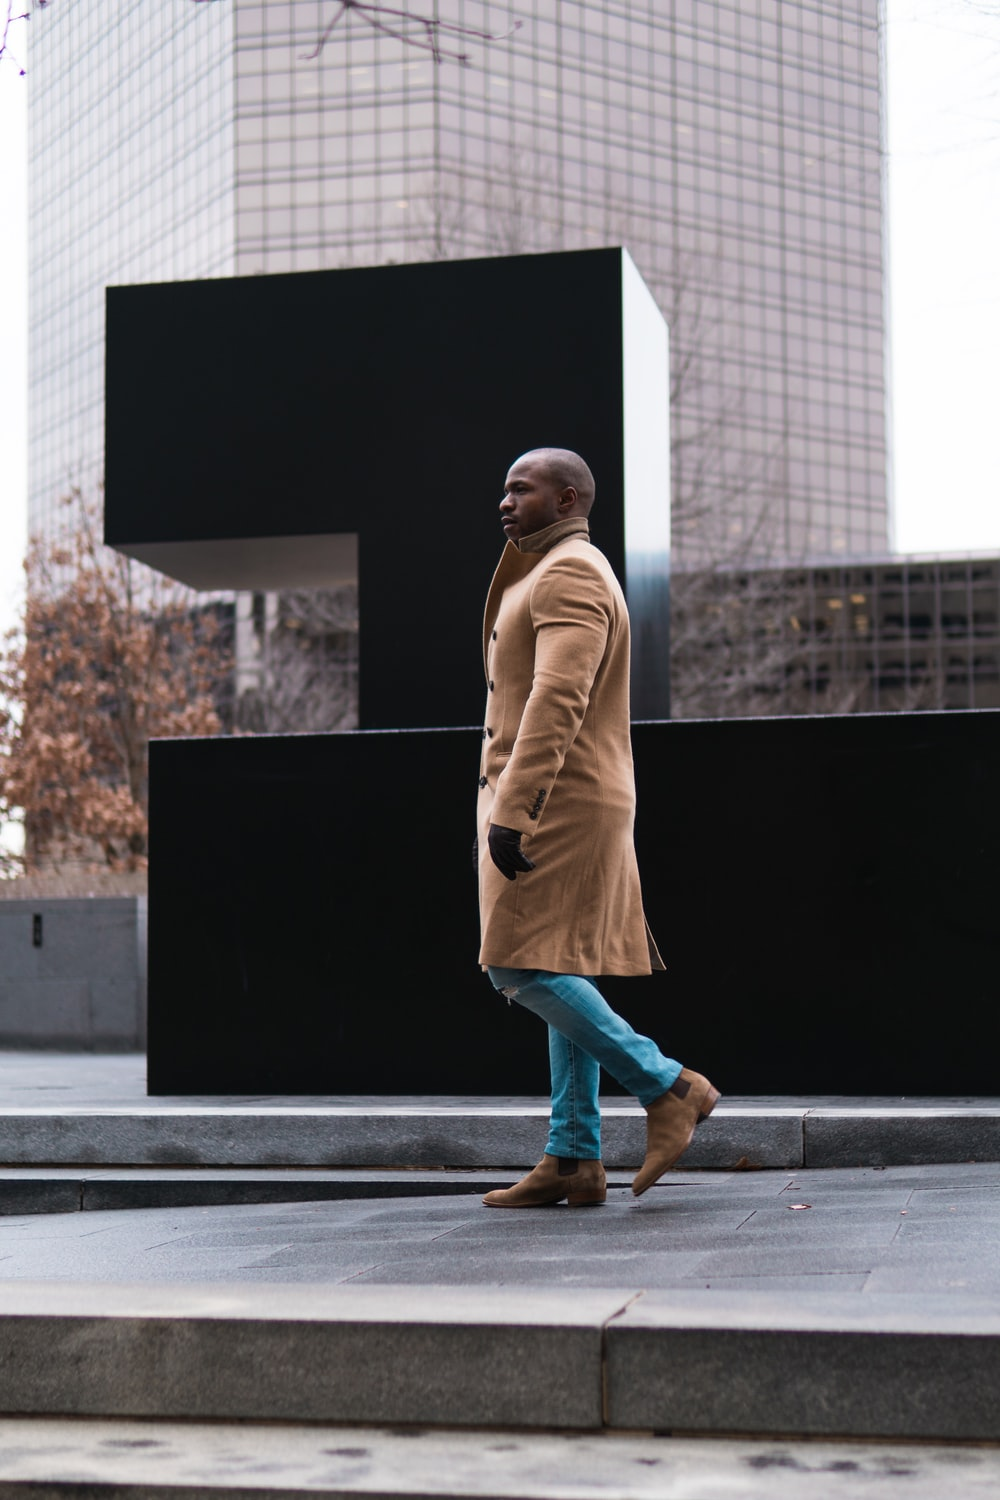 man wearing brown coat walking near black monument during daytime